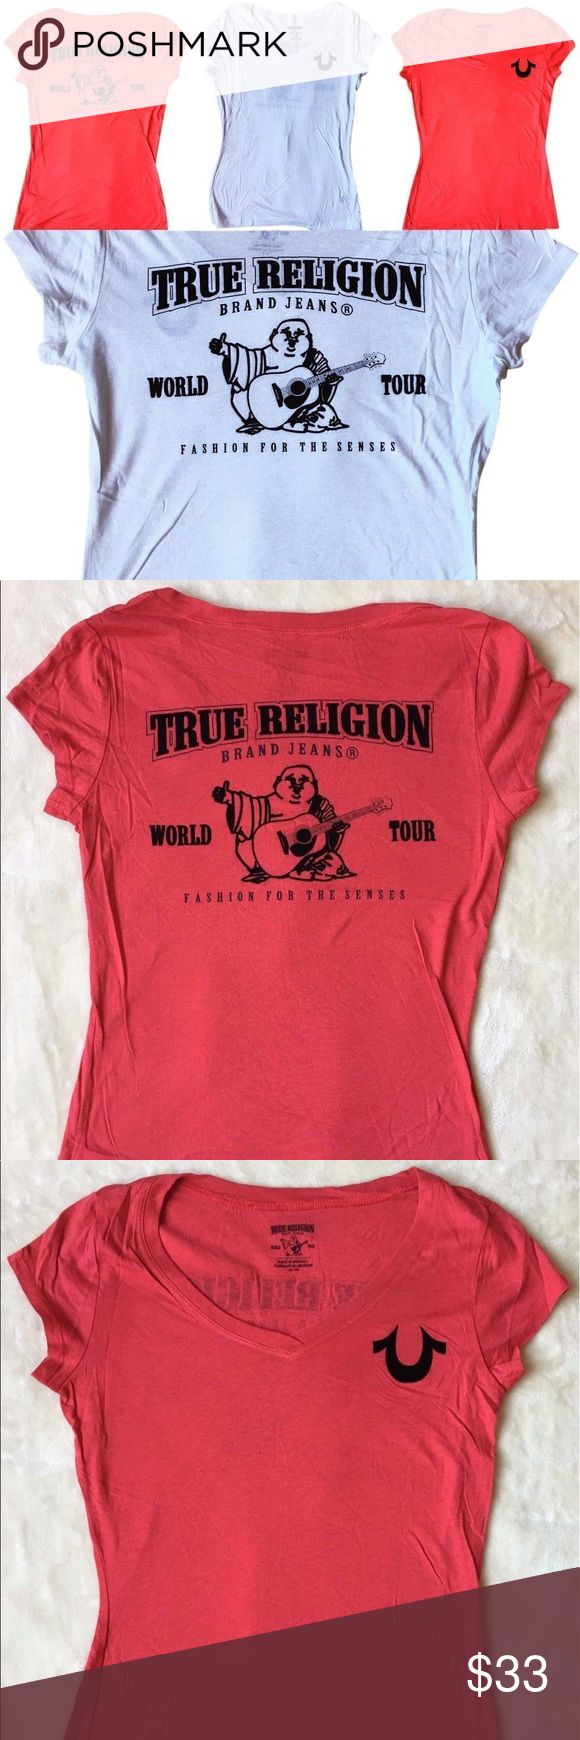 T shirt design 2 zeixs - Women S True Religion Flocked V Neck Tee Shirt Stretch V Neck 50 Cotton